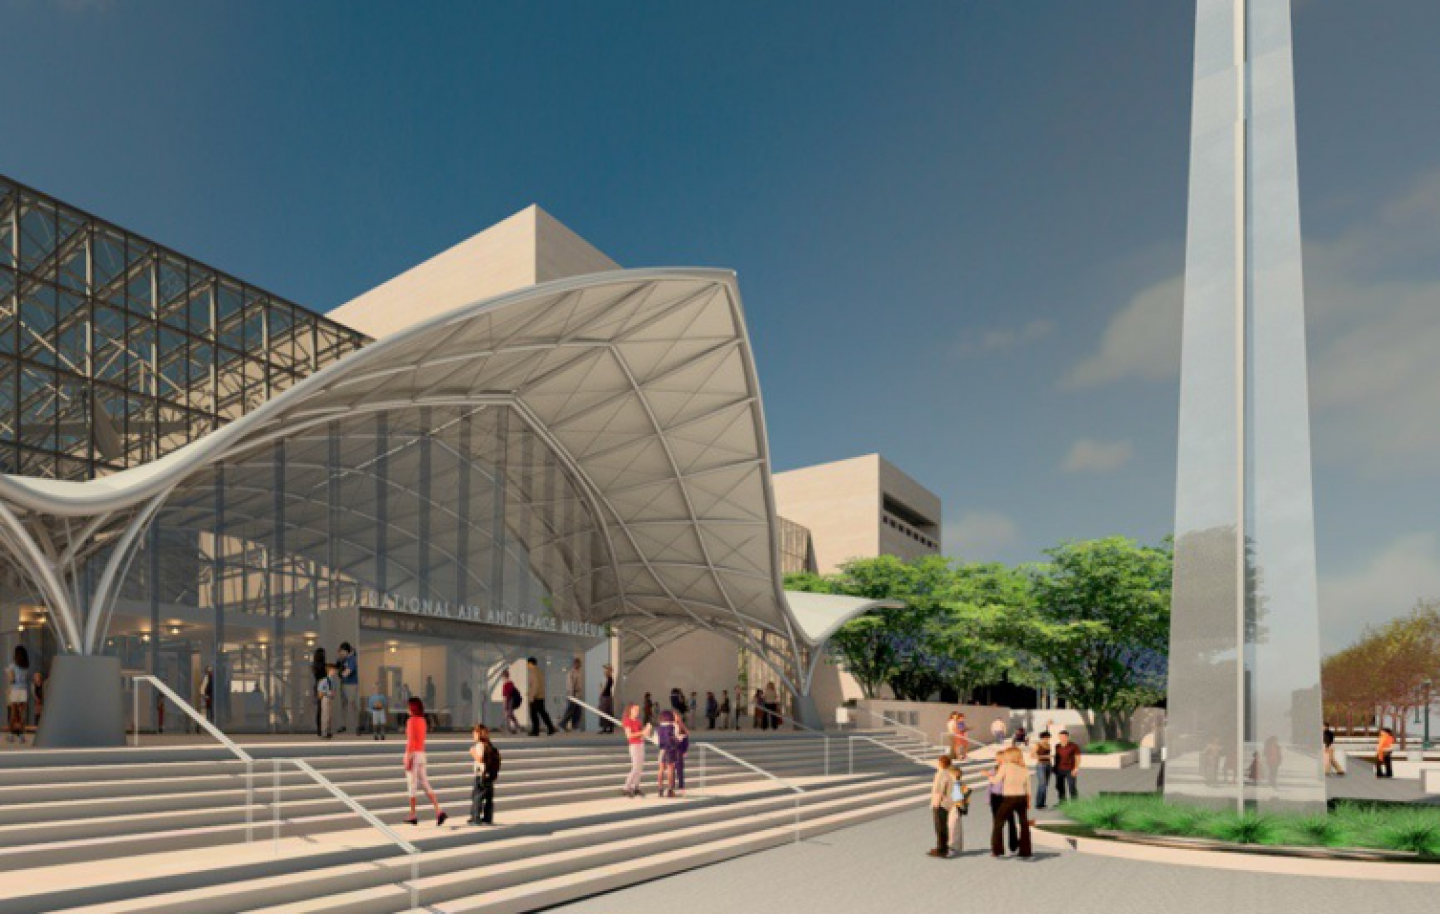 A new entrance is envisioned. (Copyright: Smithsonian Institution)